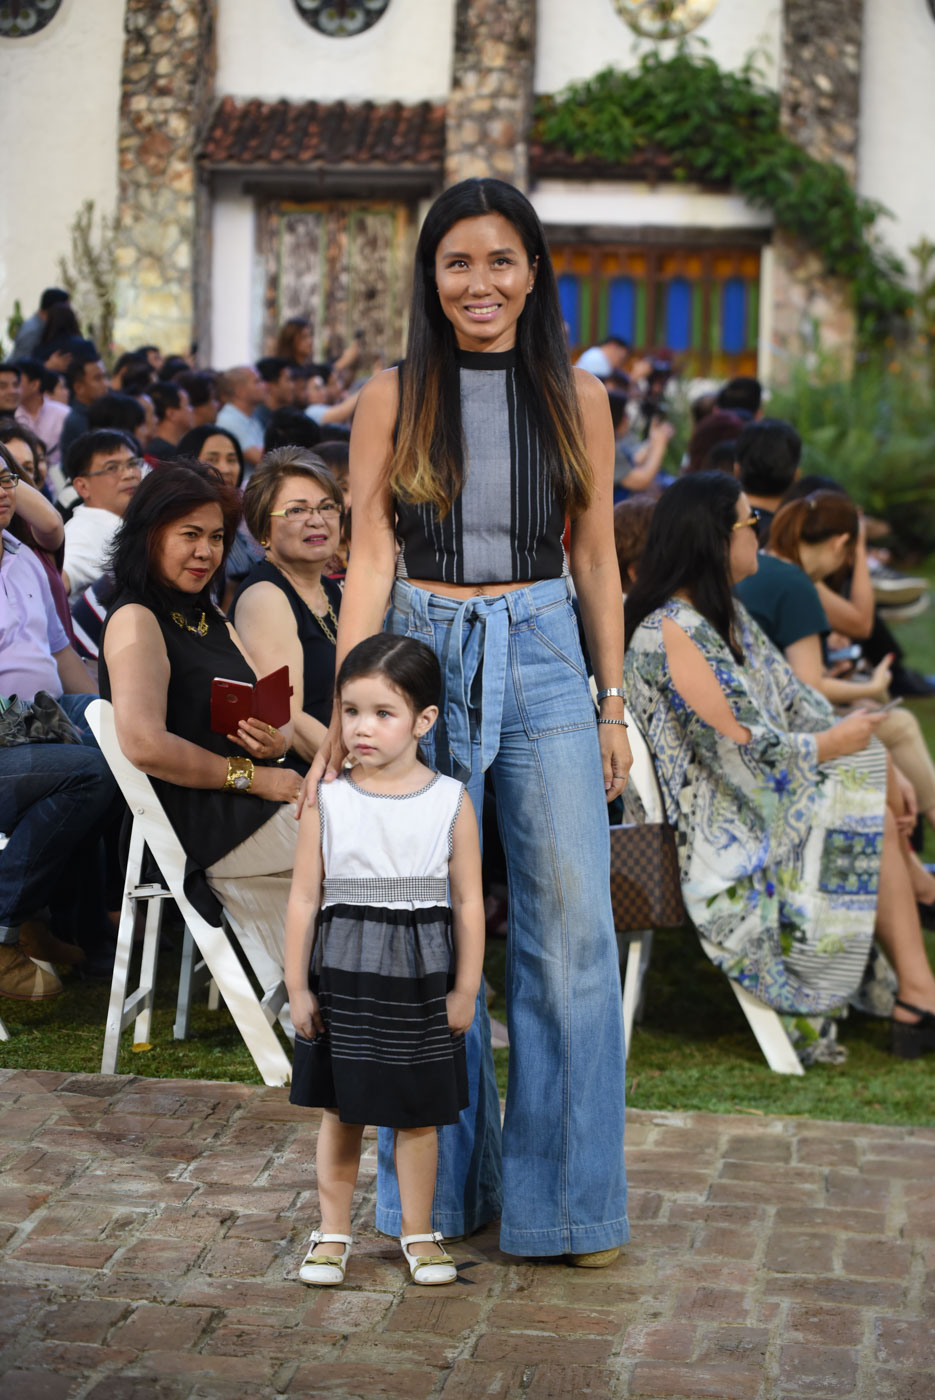 LITTLE MODEL. Artist and women's rights advocate Nikki Luna walks the runway with her daughter Alandra.